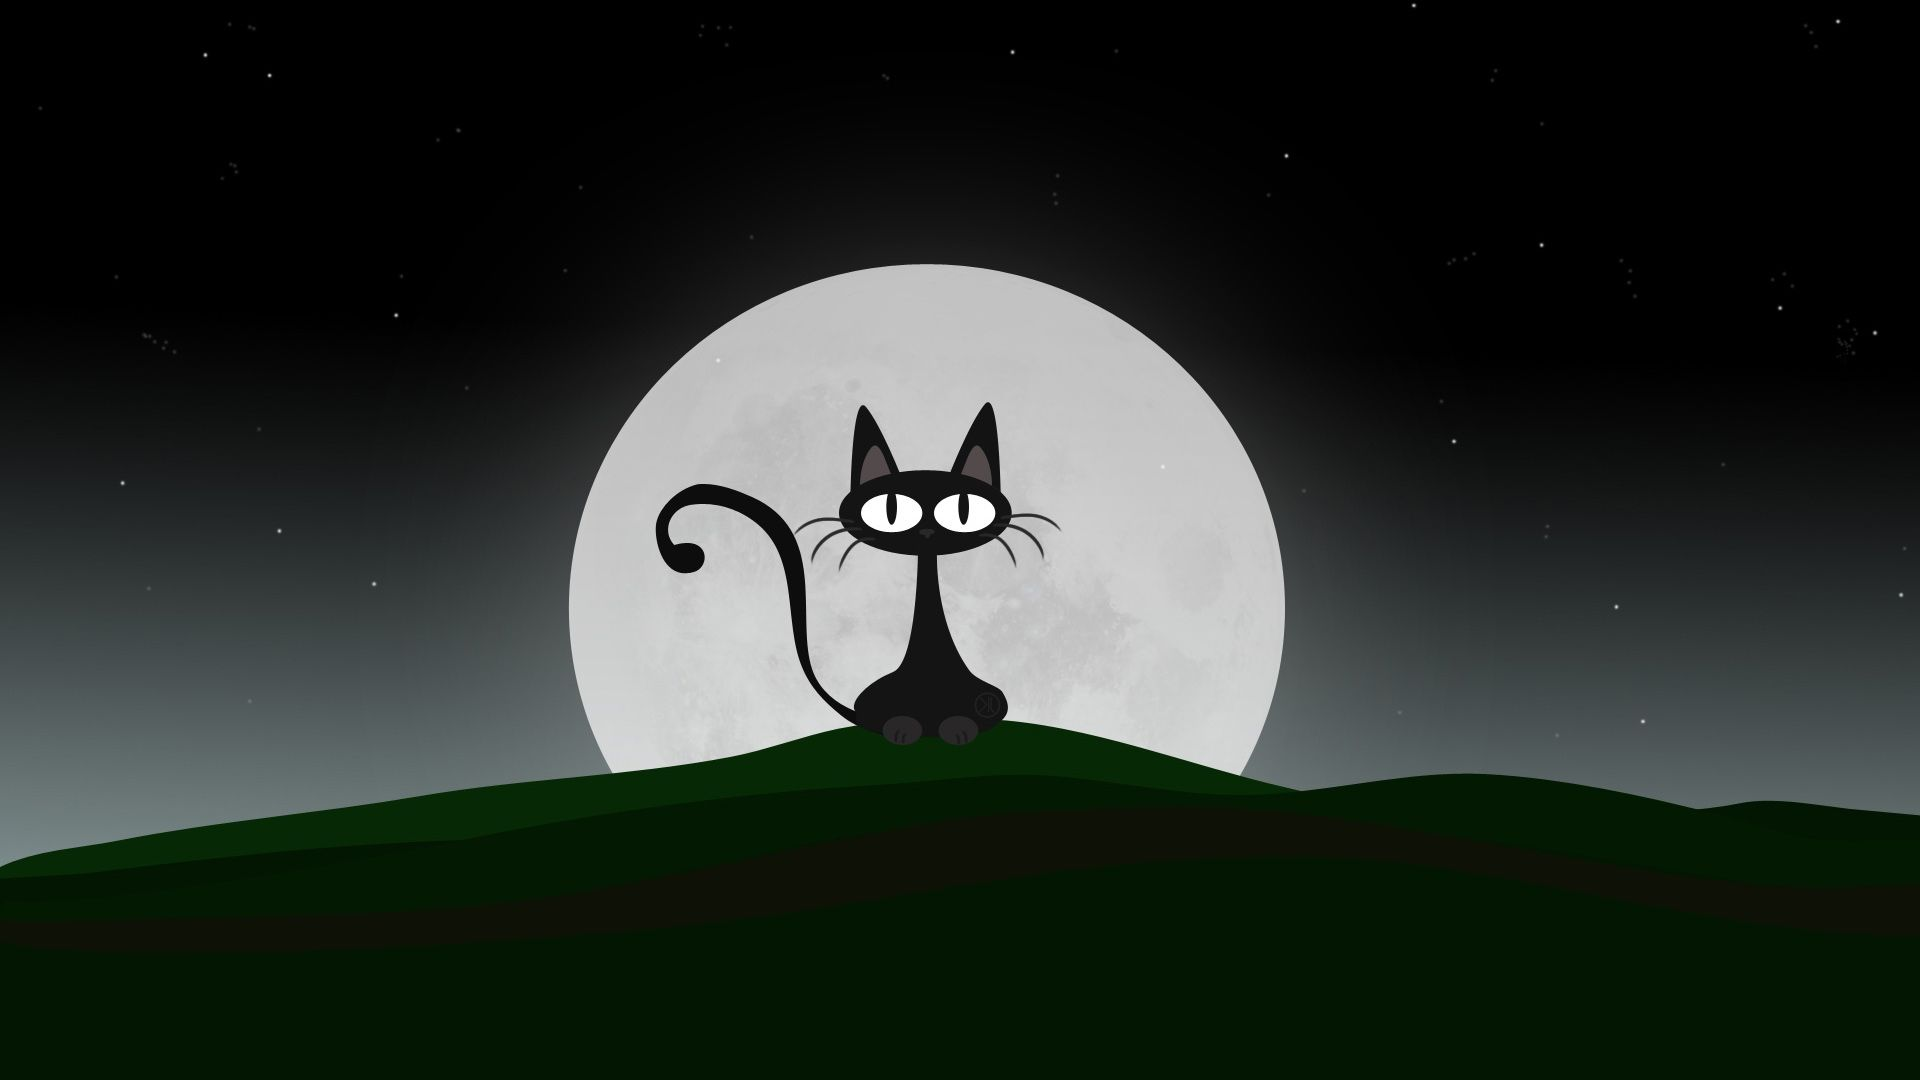 Black Cat High Definition Wallpapers Hd Wallpapers Cat Wallpaper Black Cat Art Cat Illustration